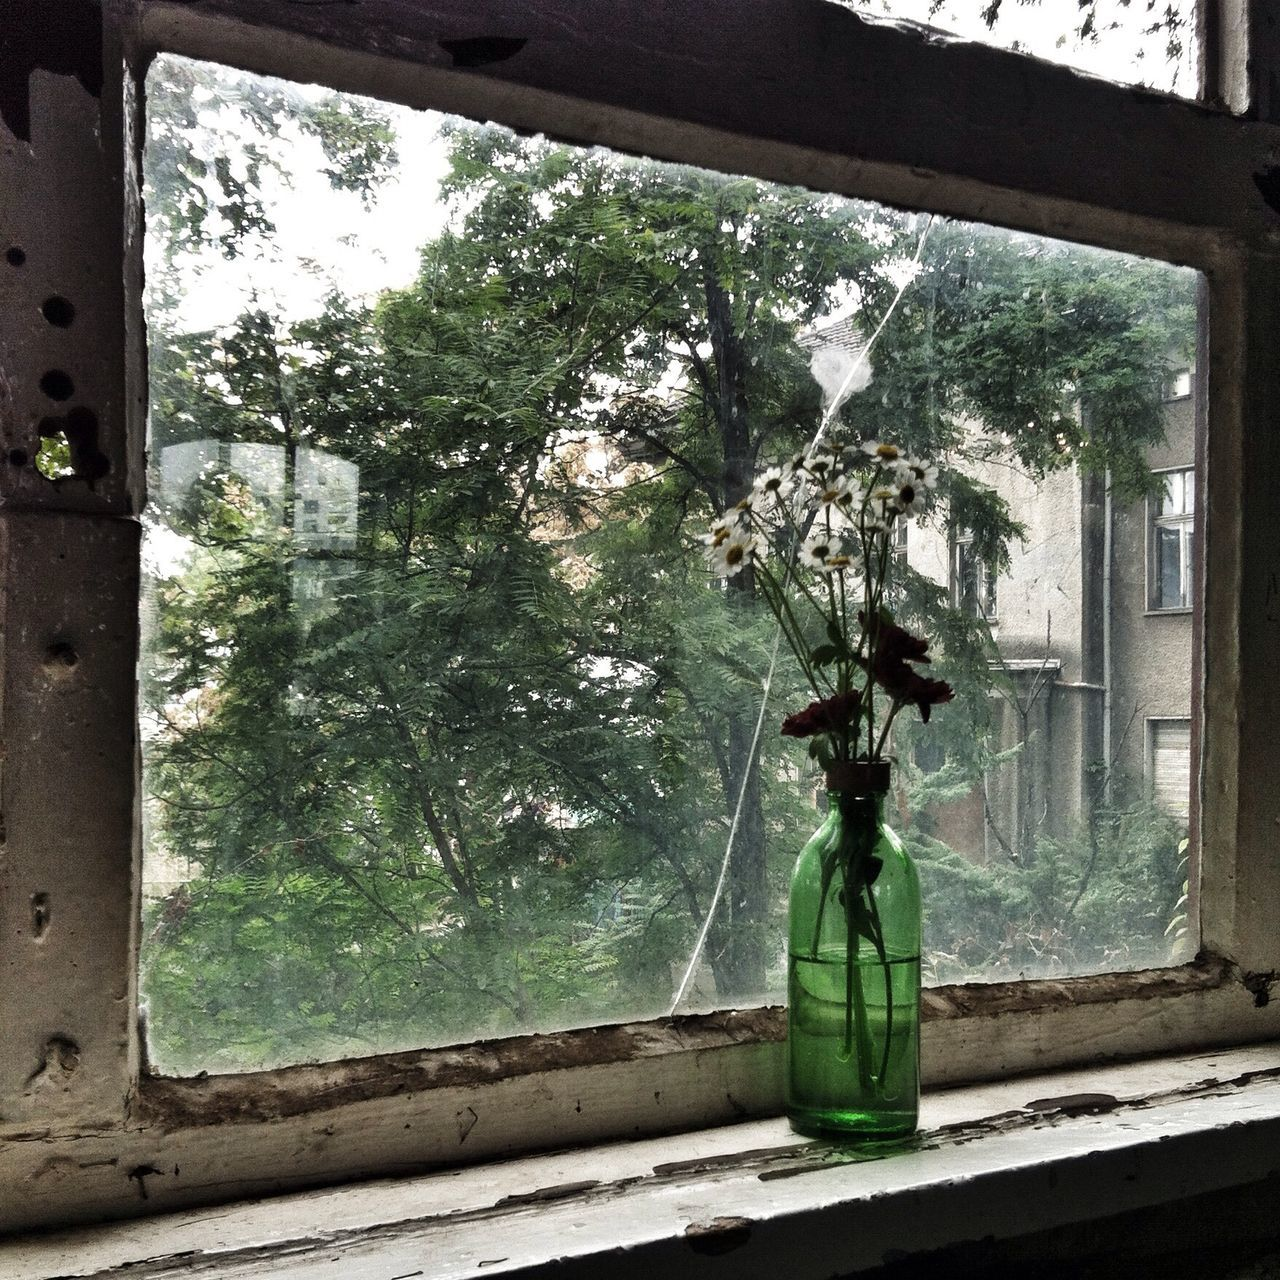 Urban Nature and Decoration at The 2014 EyeEm Festival & Awards